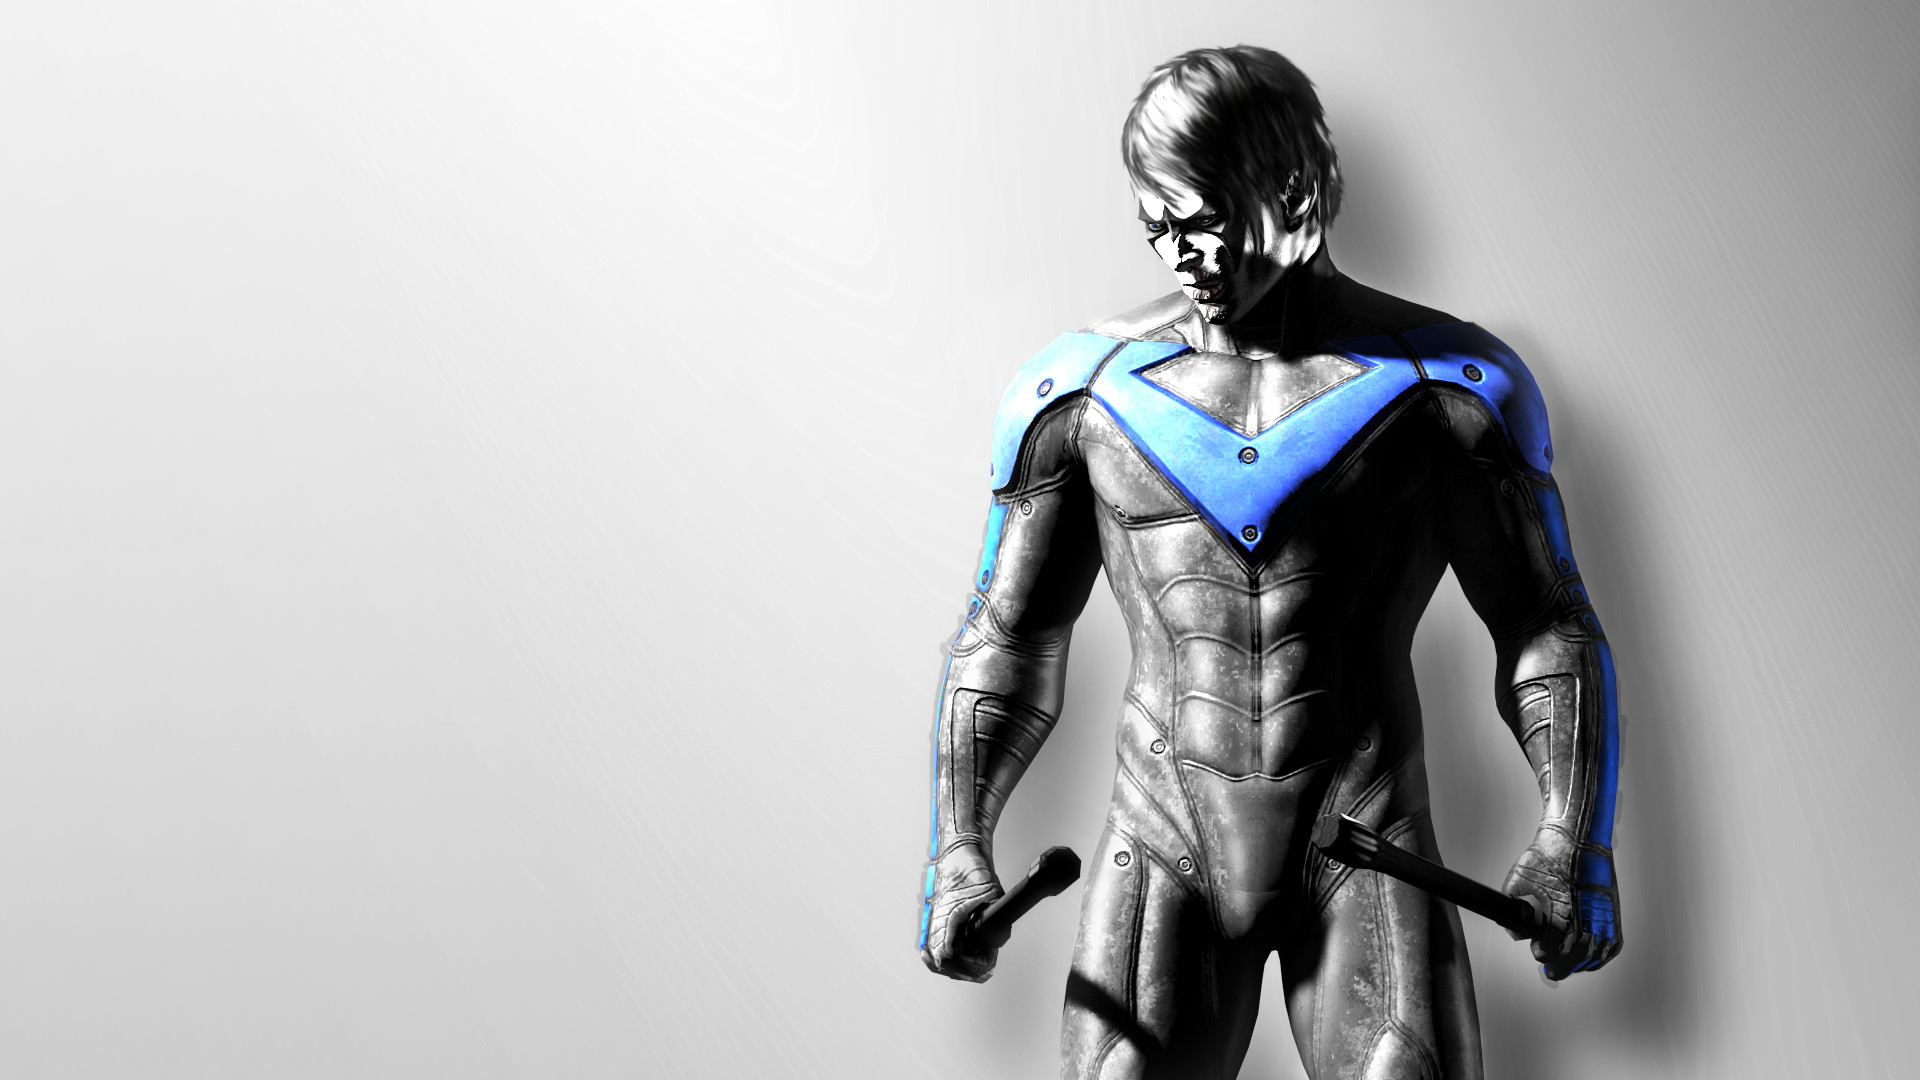 Nightwing Wallpapers High Resolution For Desktop Wallpaper 1920 x 1080 px  623.08 KB injustice blue new